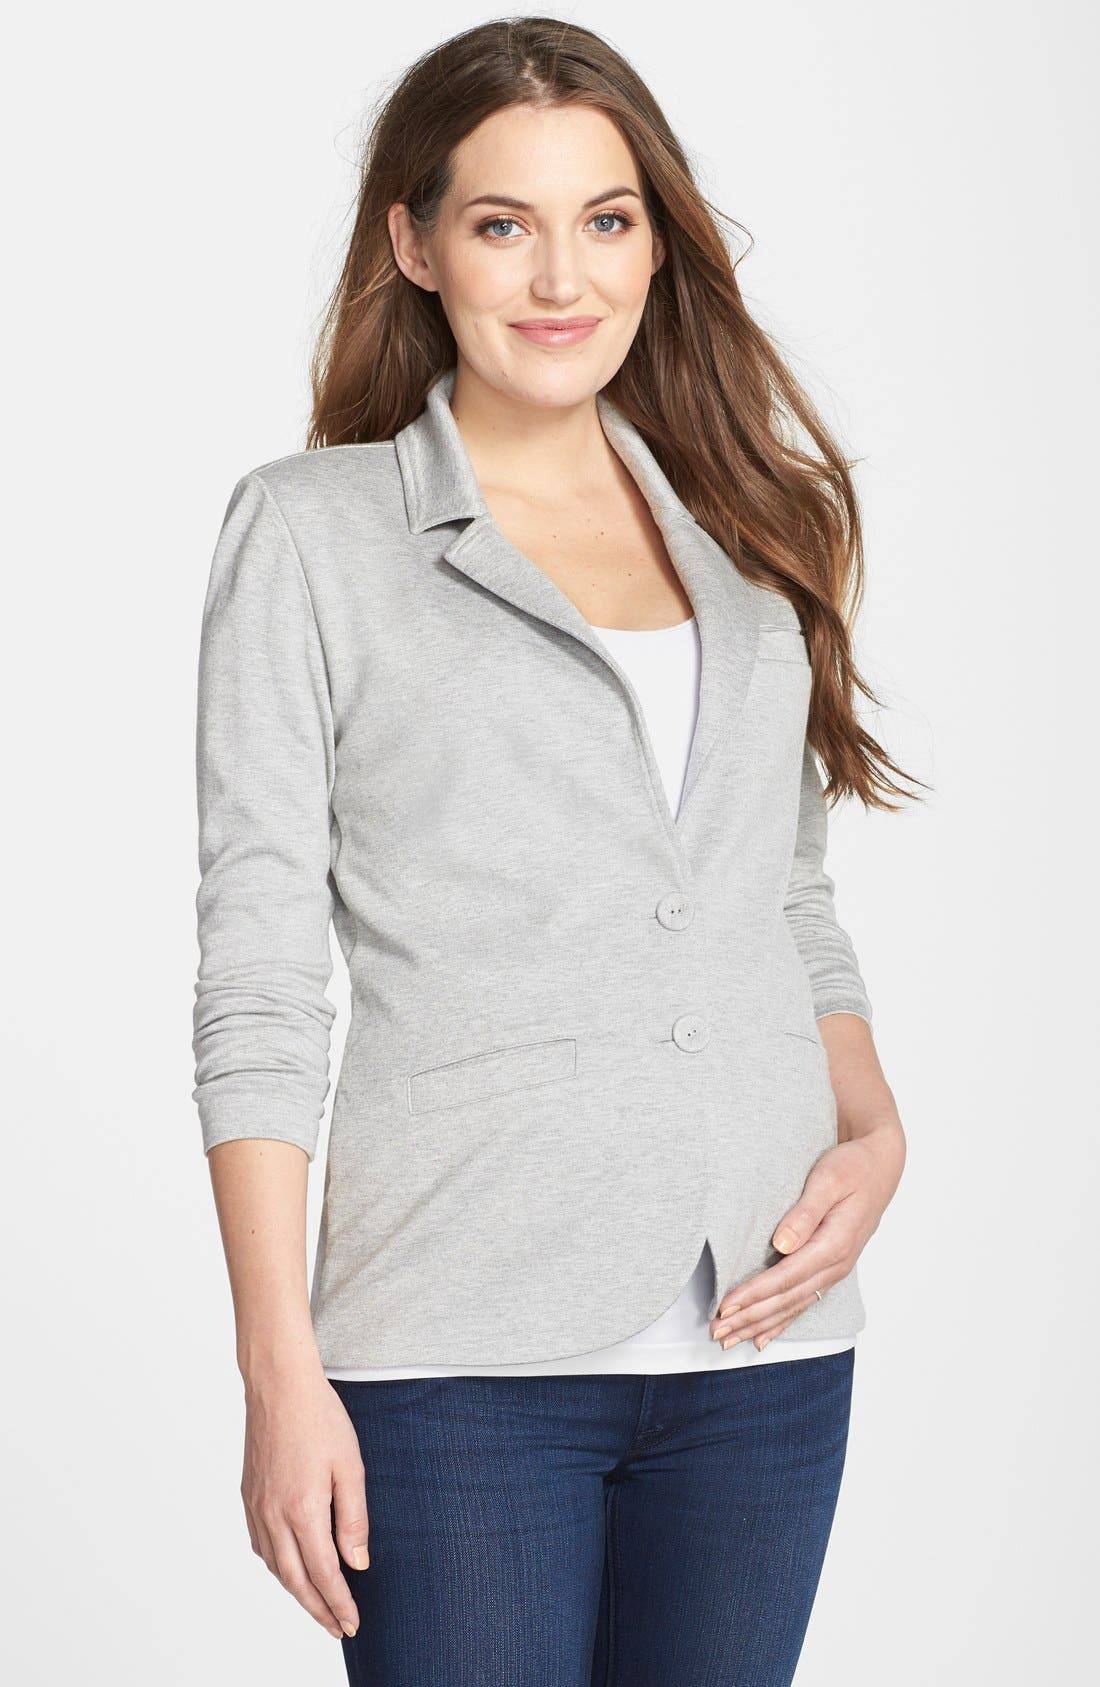 Essential Maternity Blazer,                             Main thumbnail 1, color,                             HEATHER GREY